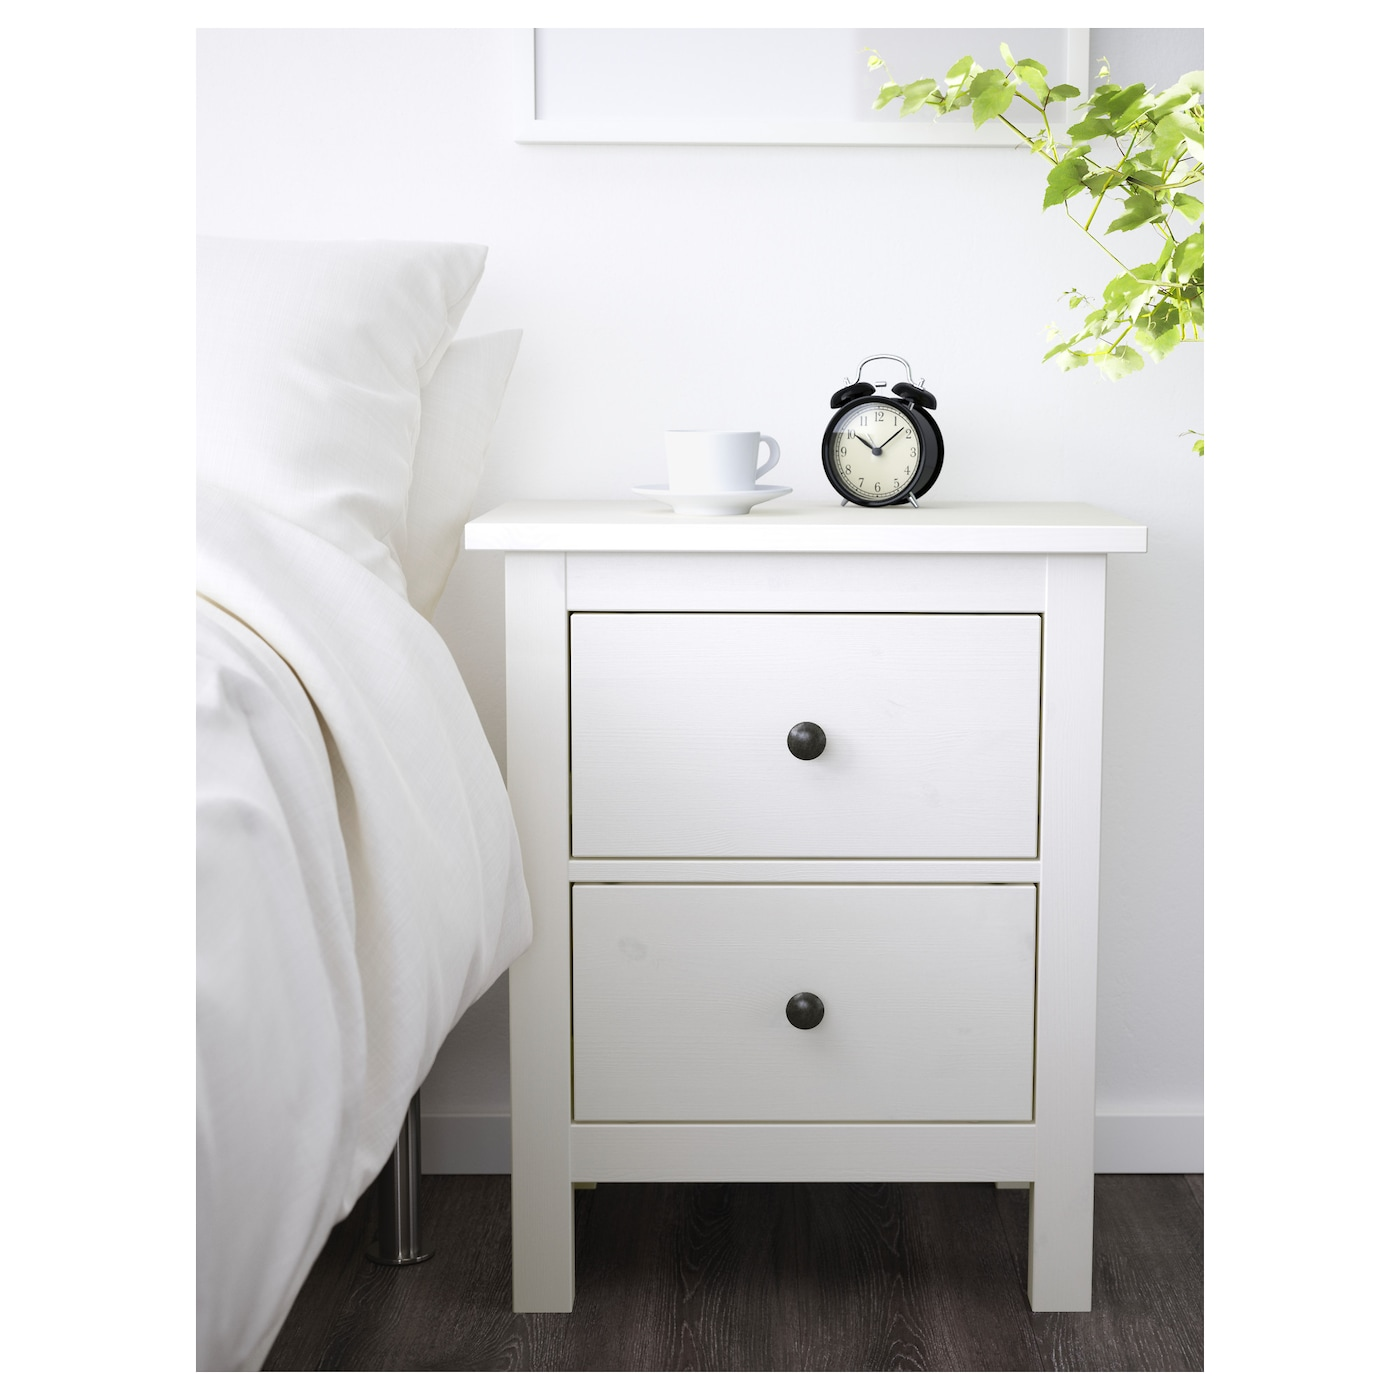 hemnes commode 2 tiroirs teint blanc 54x66 cm ikea. Black Bedroom Furniture Sets. Home Design Ideas